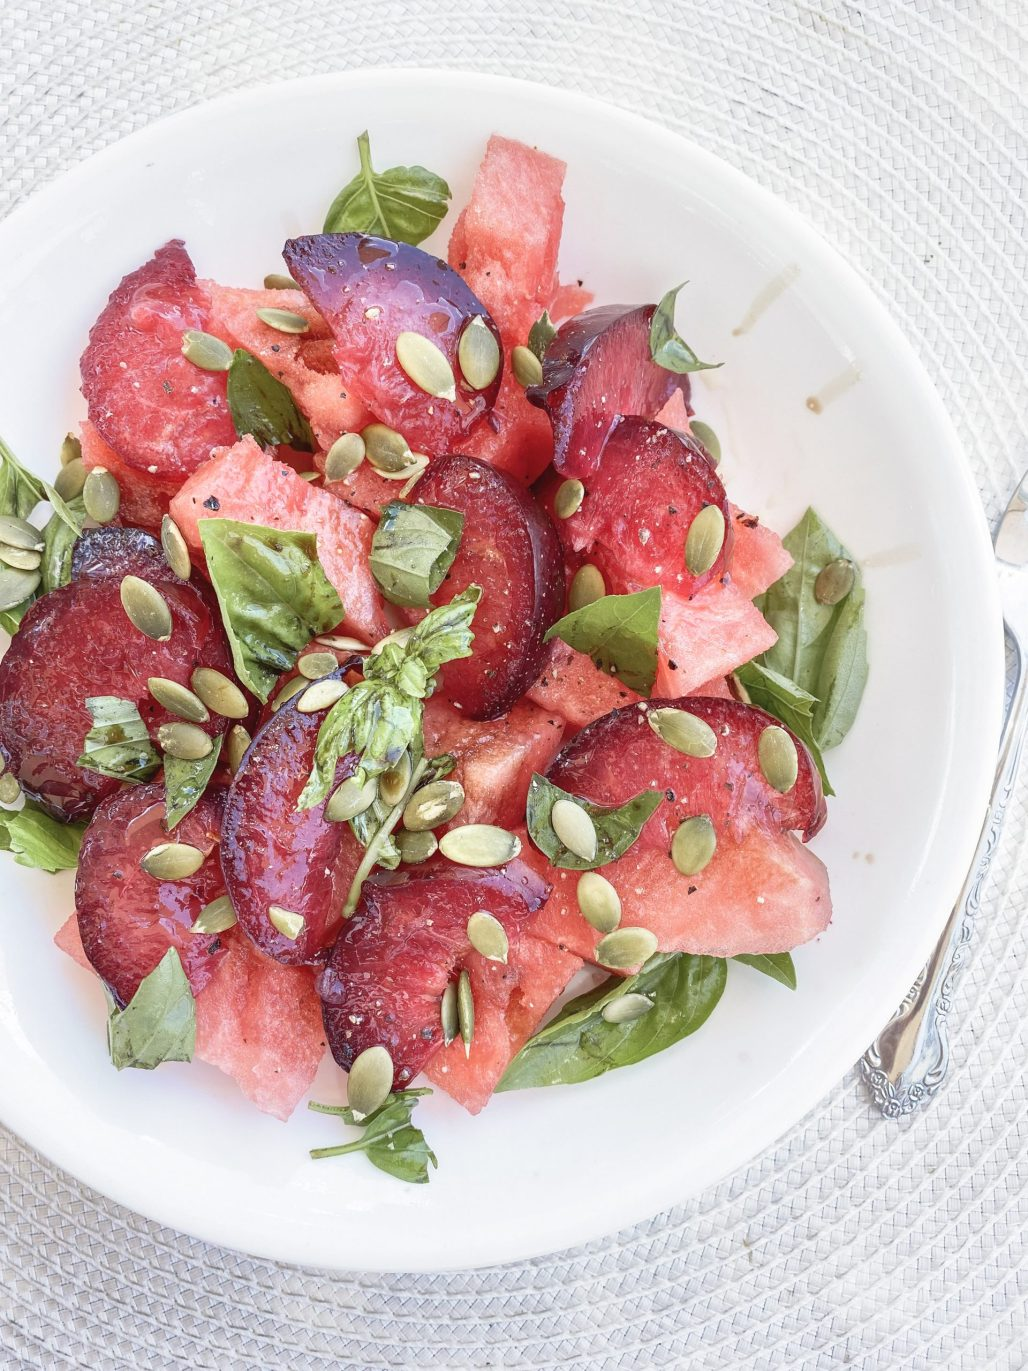 Watermelon + Plum Salad || Dreamery EventsWatermelon, Peach + Tomato Caprese Salad ... the only meal you'll want this Summer! || Dreamery Events